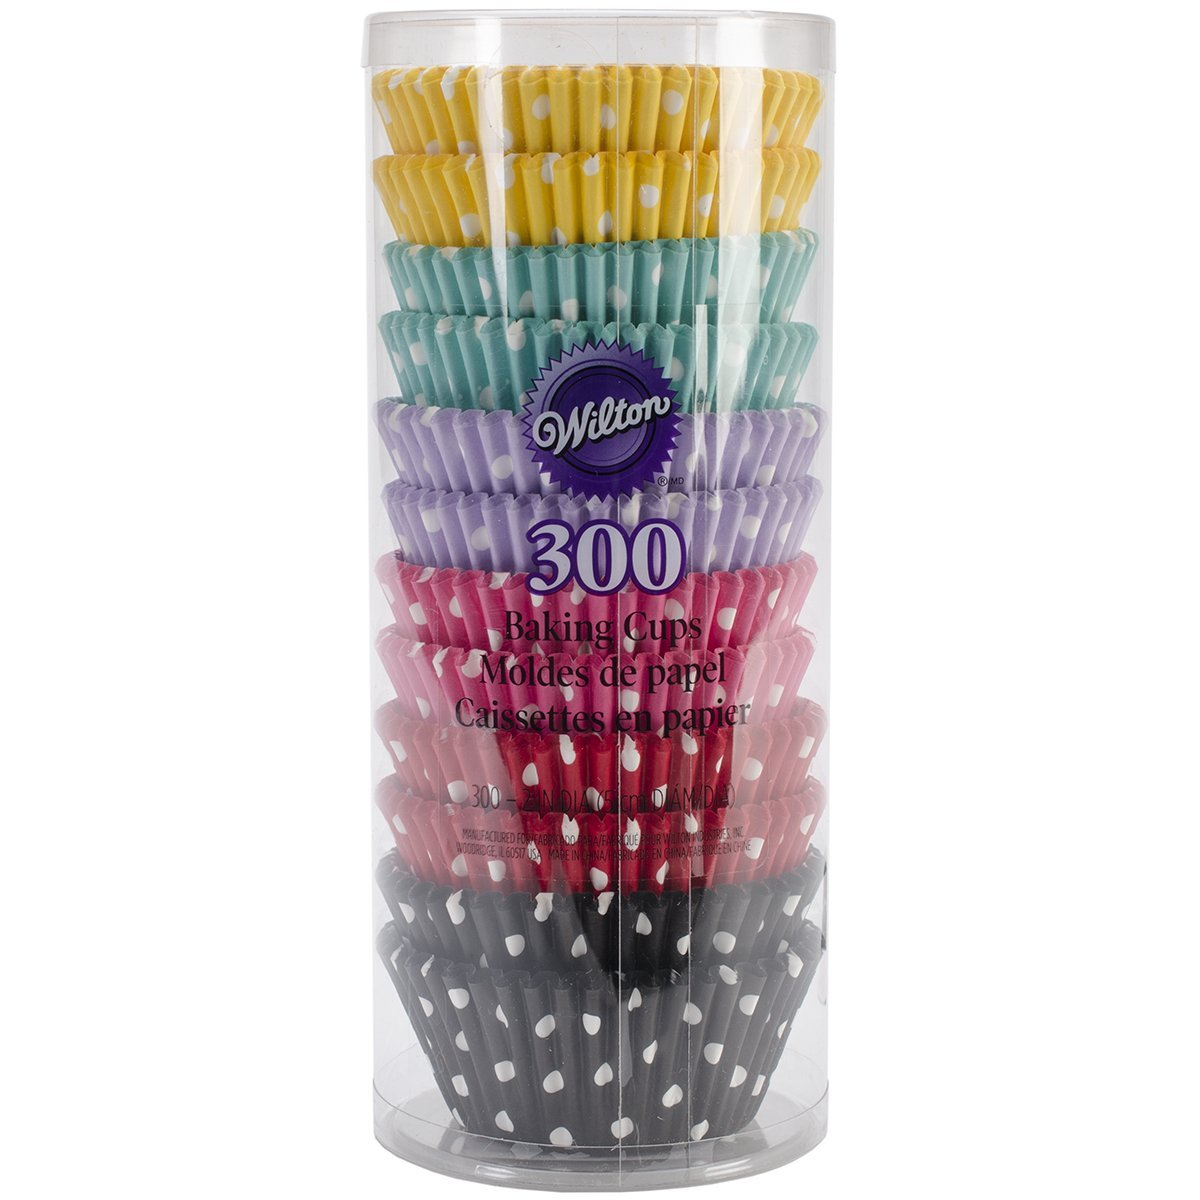 Wilton Polka Dots Collection of Baking Cups, 300 Ct.